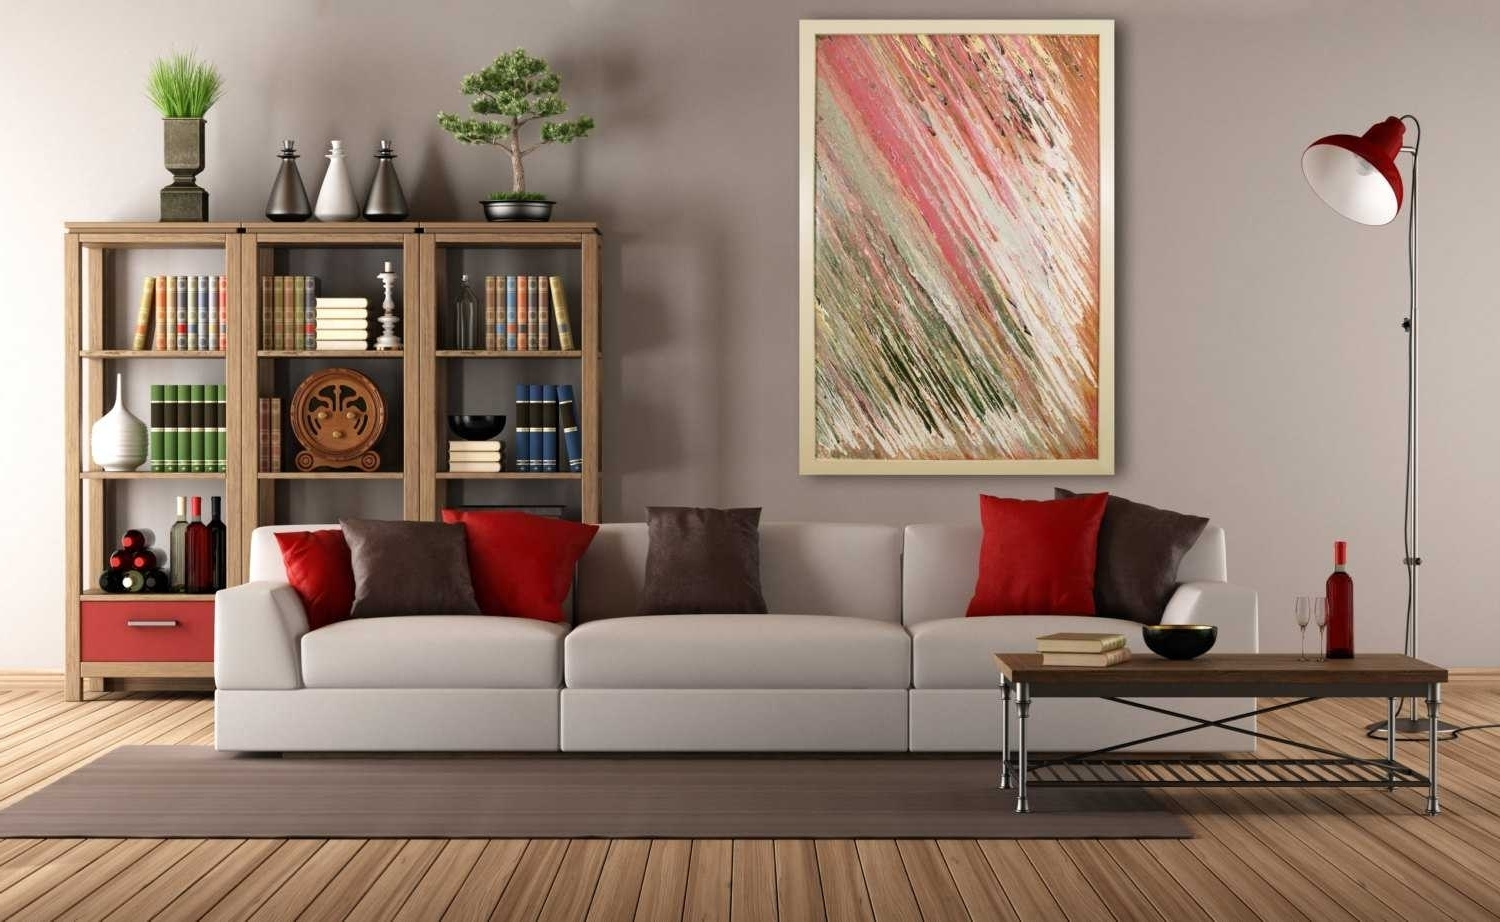 Photos Of Oversized Wall Art Contemporary Showing 3 15 Modern Throughout Oversized Wall Art (View 18 of 20)